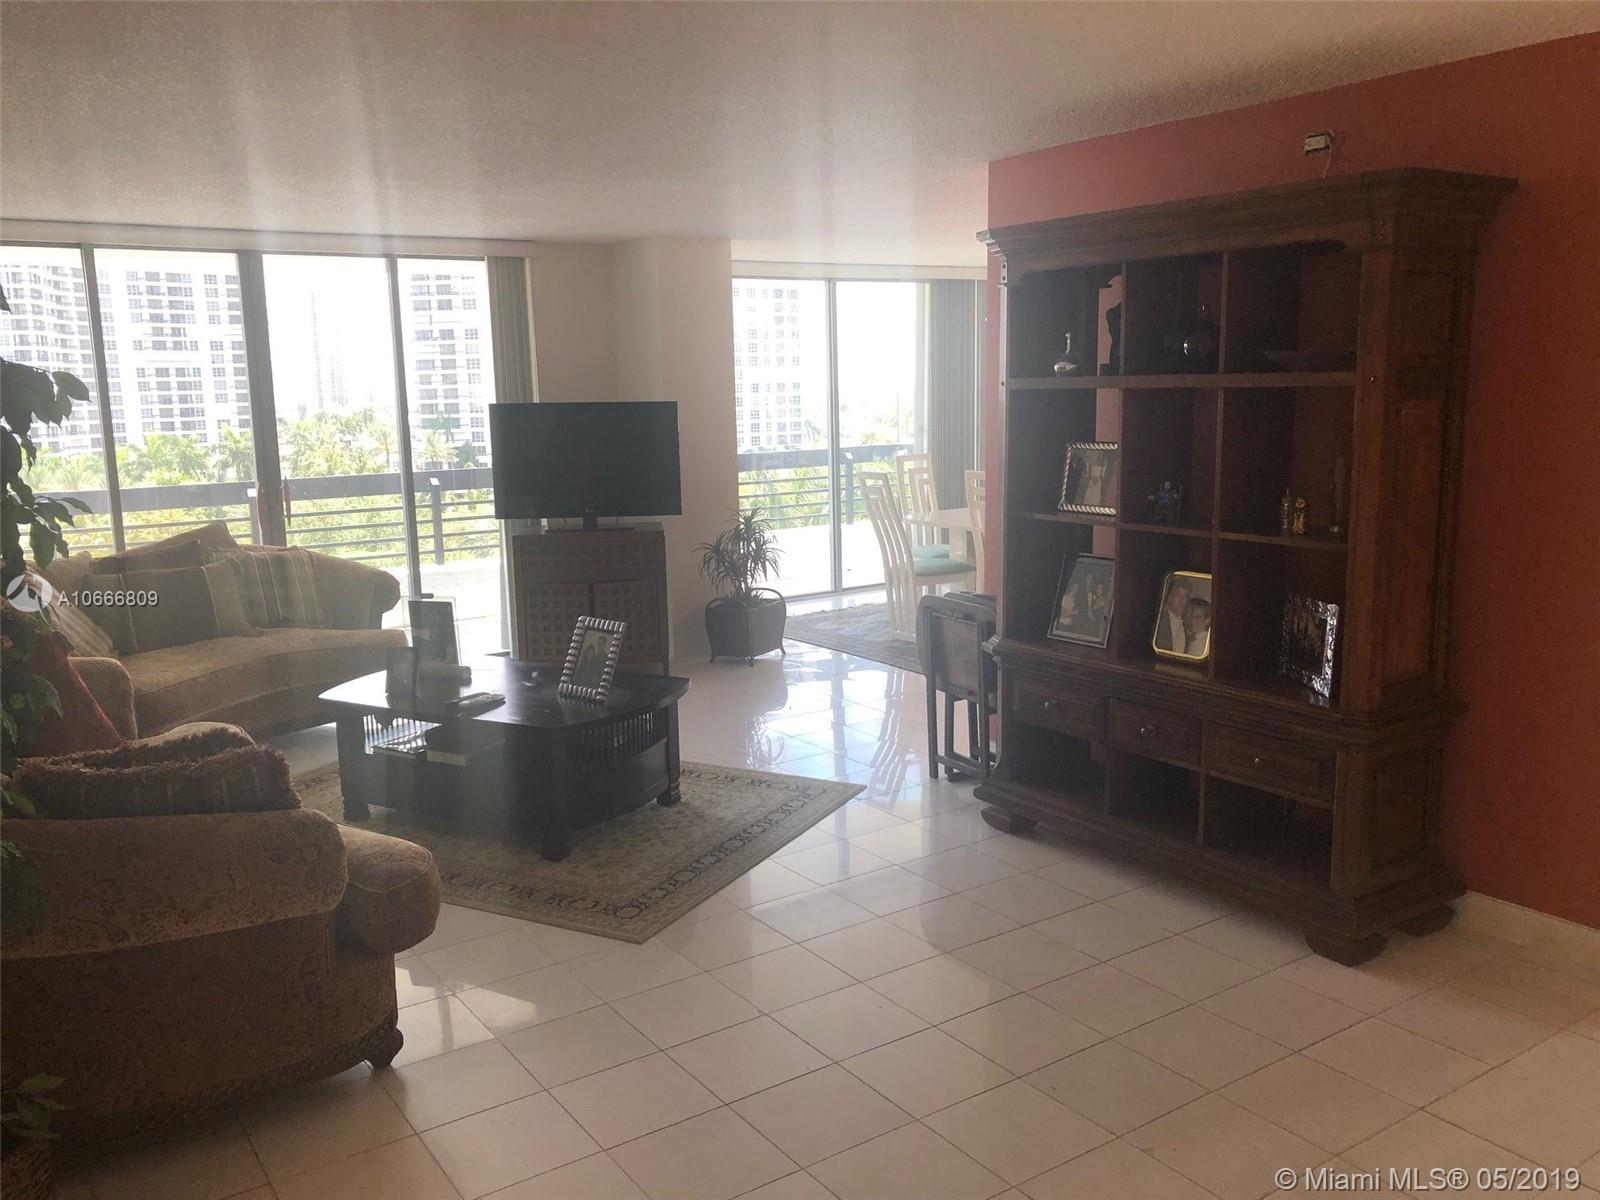 Mystic Pointe Tower 400 #808 - 3500 Mystic Pointe Dr #808, Aventura, FL 33180